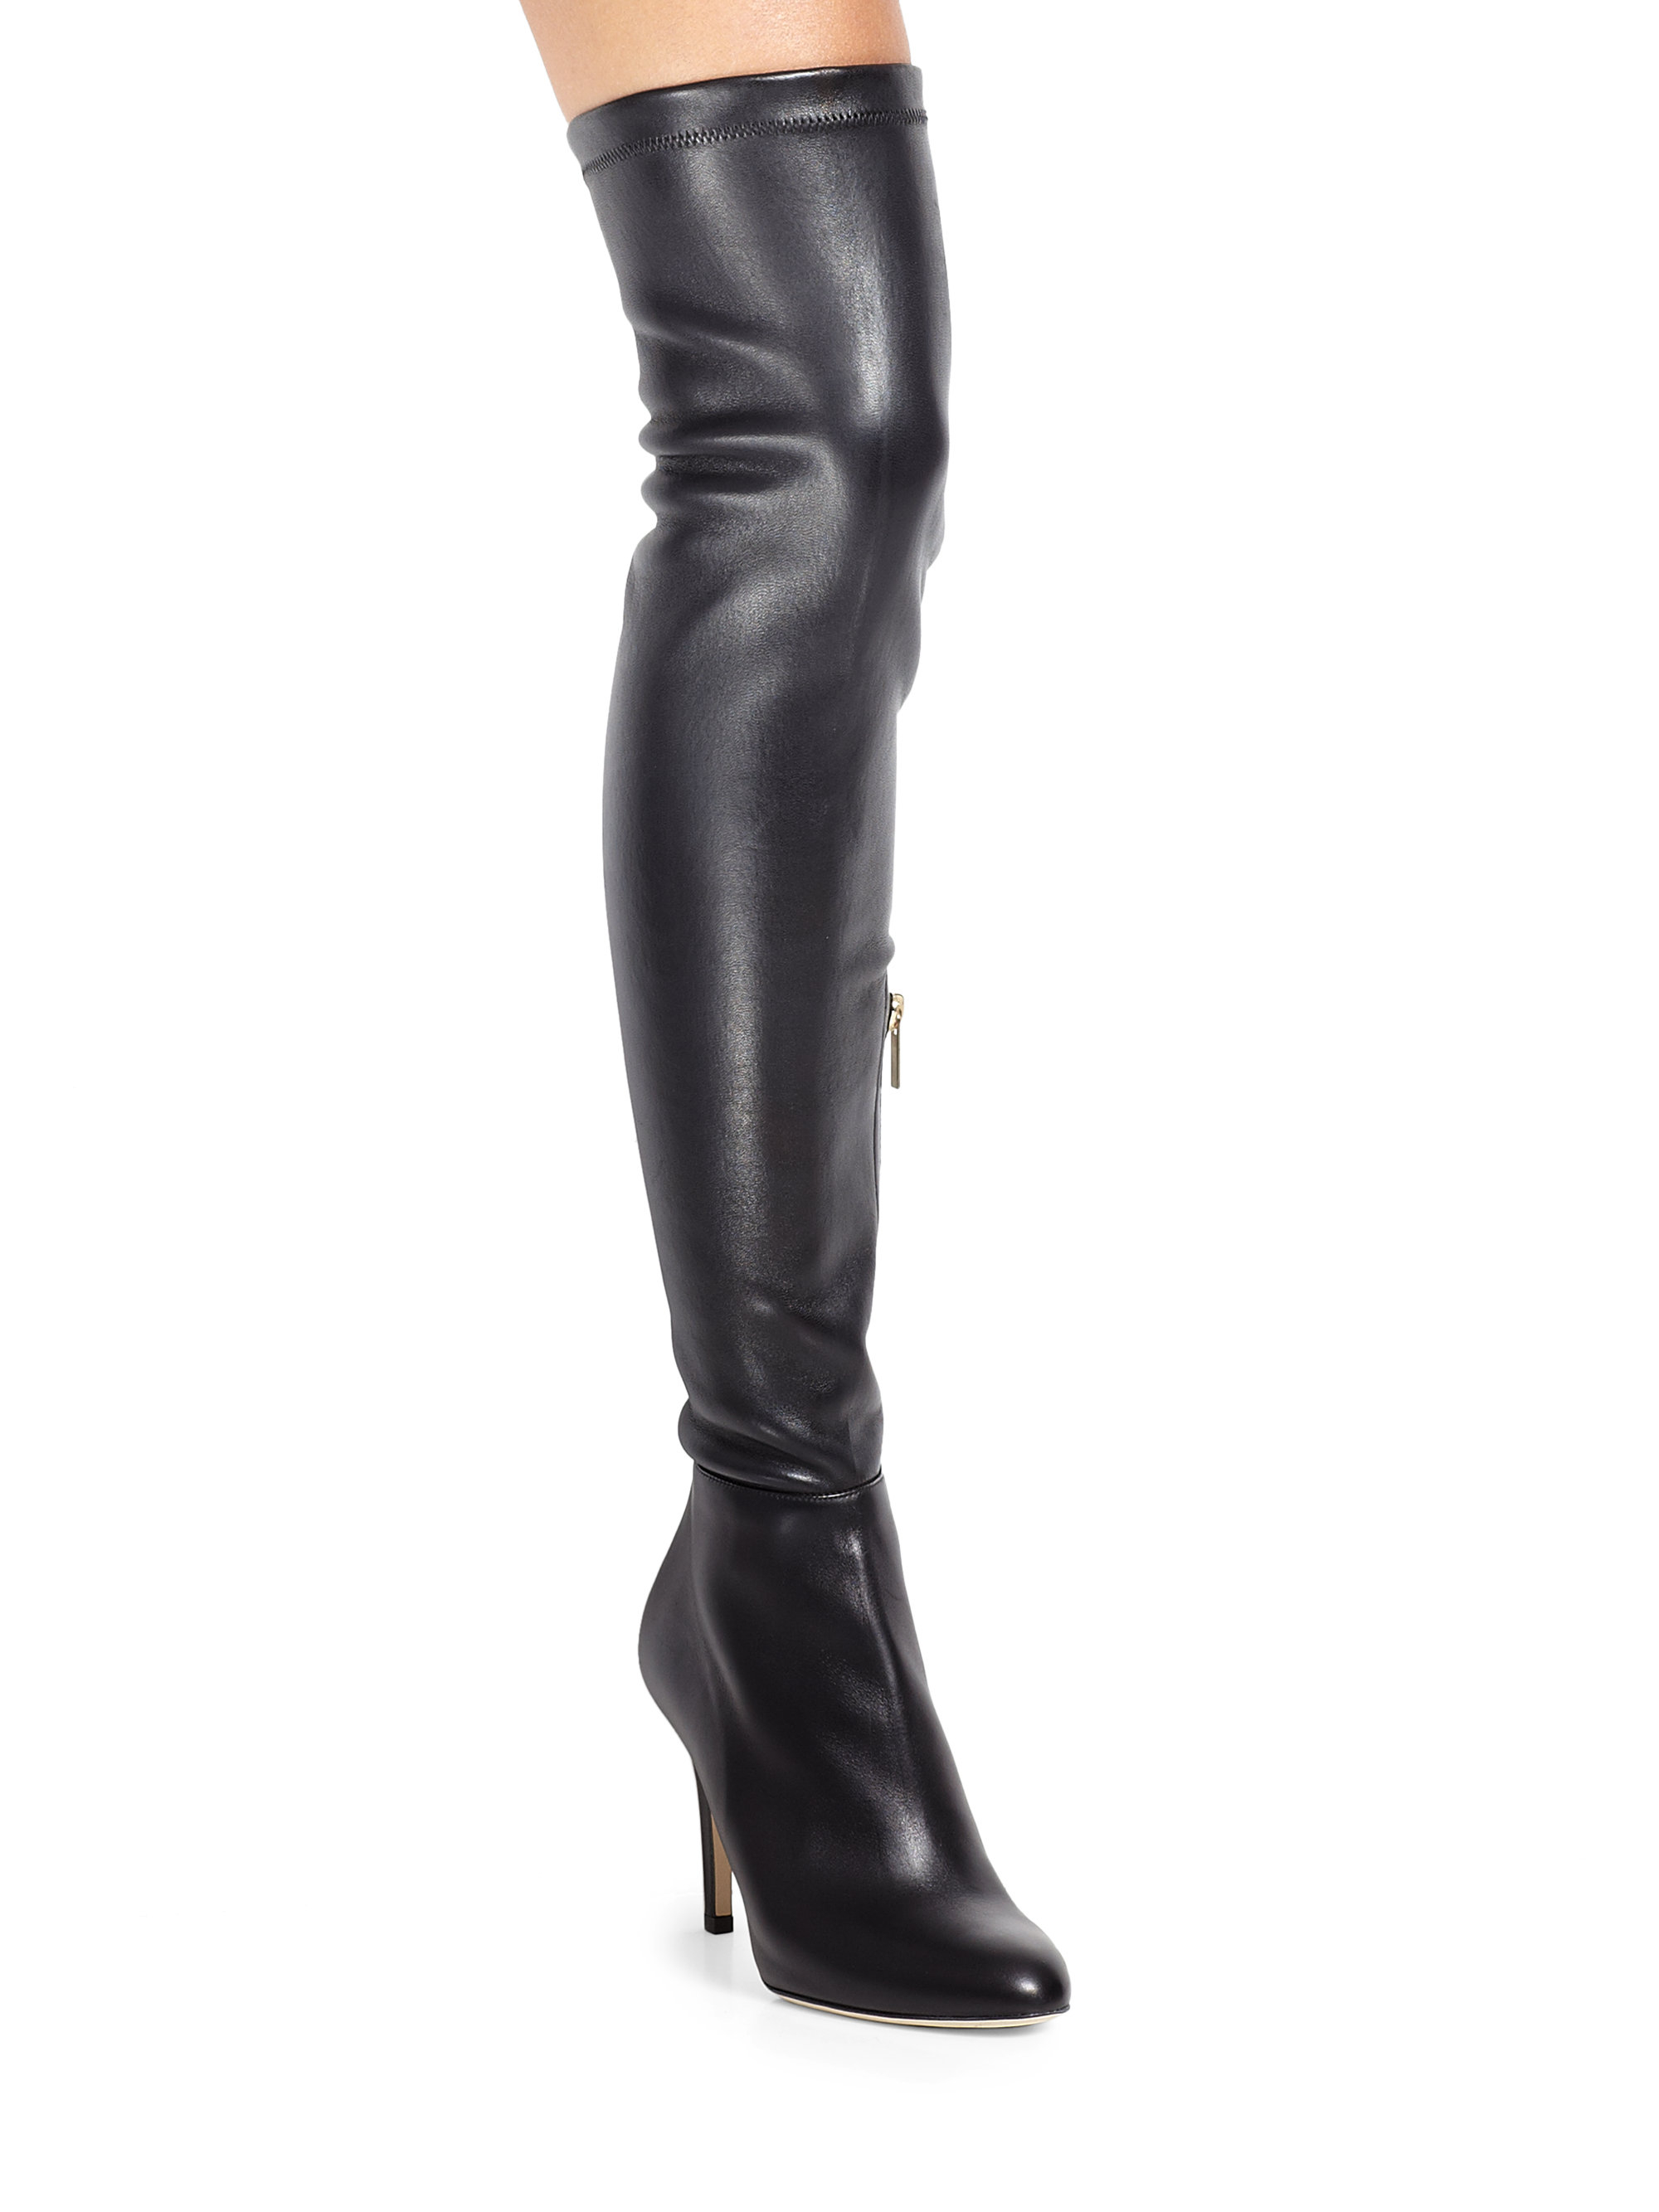 Lyst - Jimmy choo Toni Leather Over-The-Knee Boots in Black